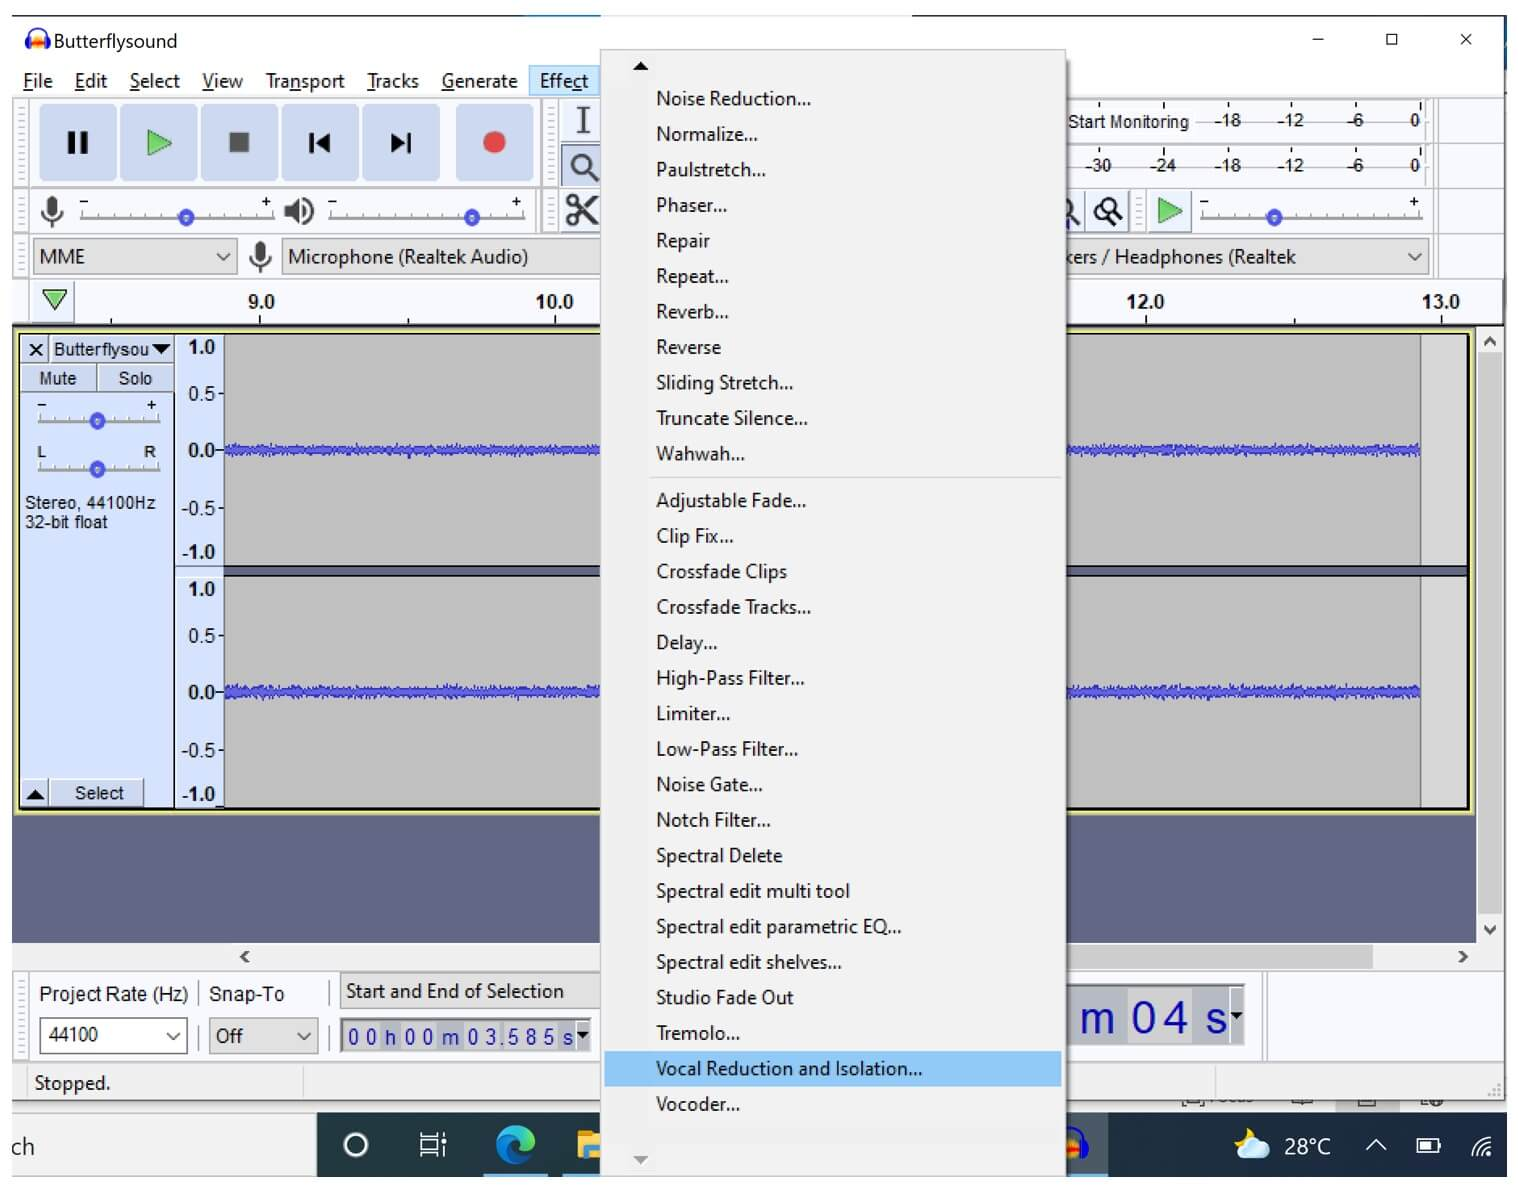 audacity-vocal-reducation-and-isolation